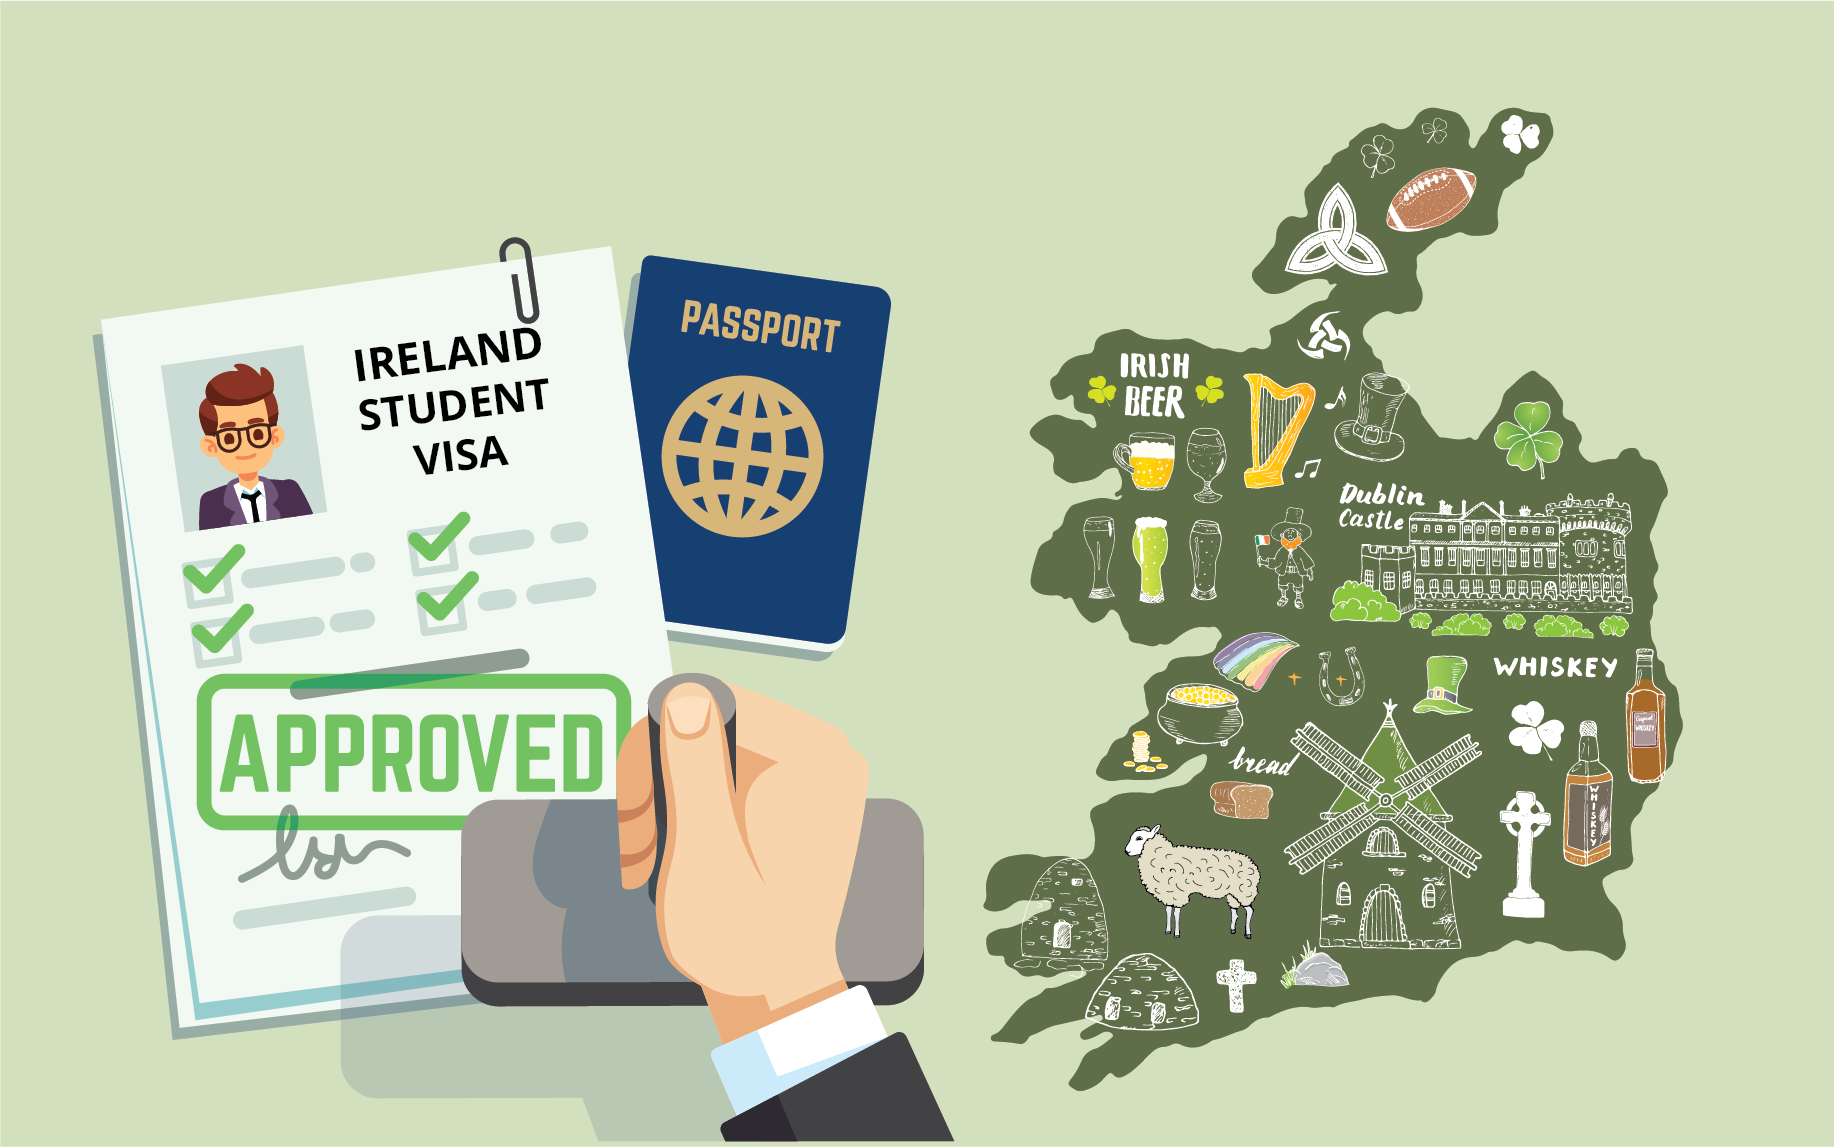 How To Get An Ireland Student Visa Applications 2020 Leverage Edu